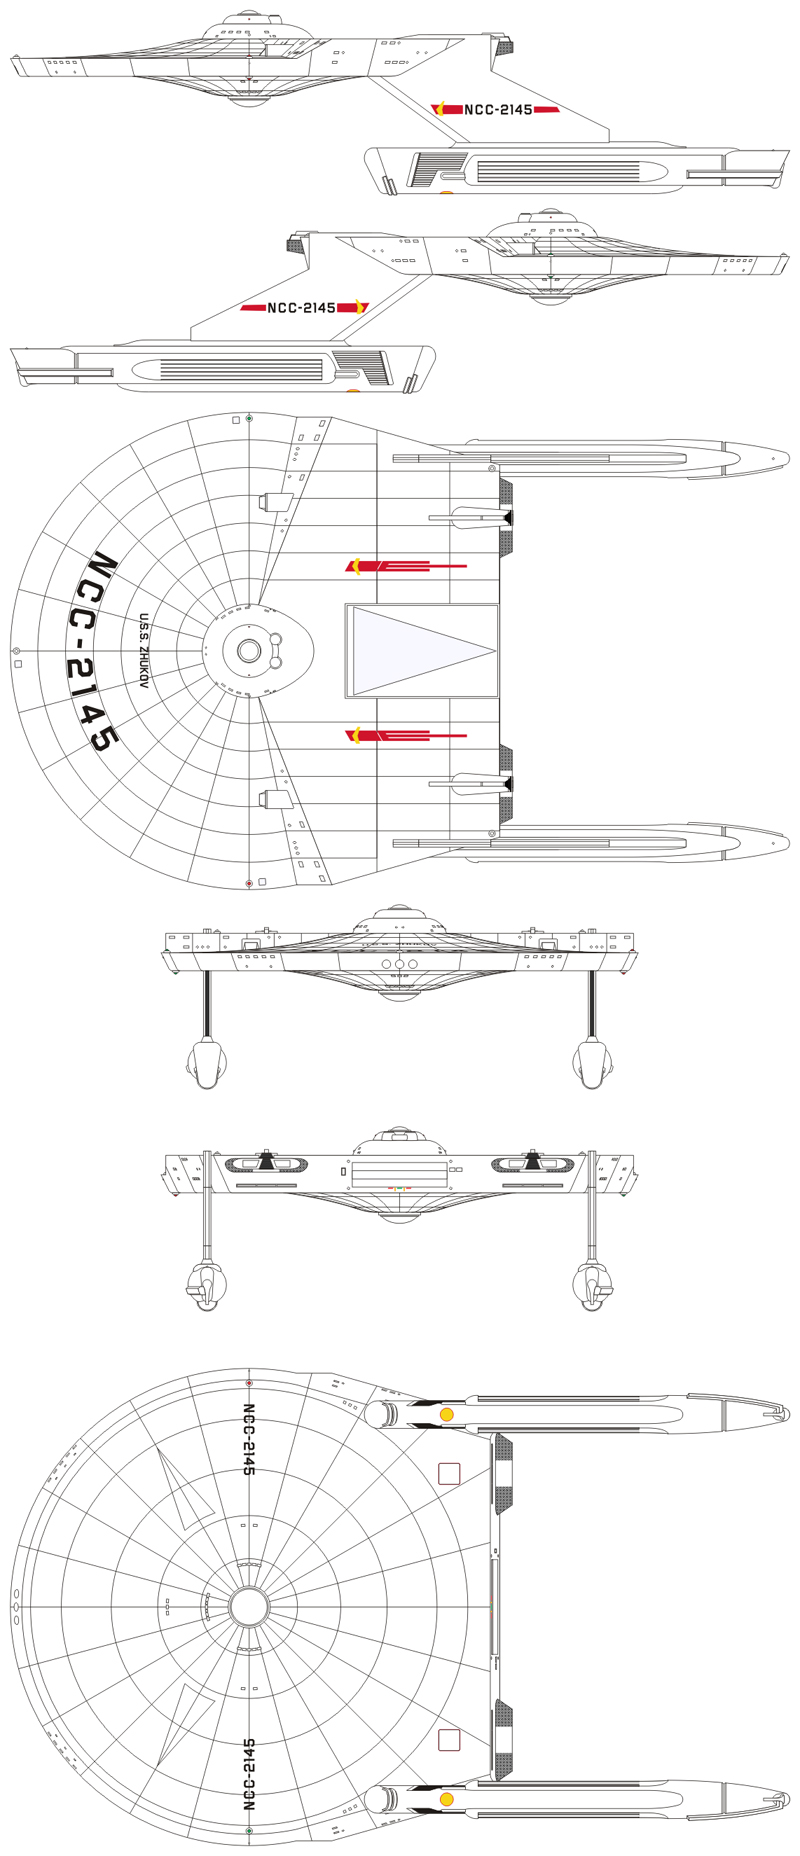 Starship schematic database ufp and starfleet frigates capital frigate zhukov ccuart Image collections